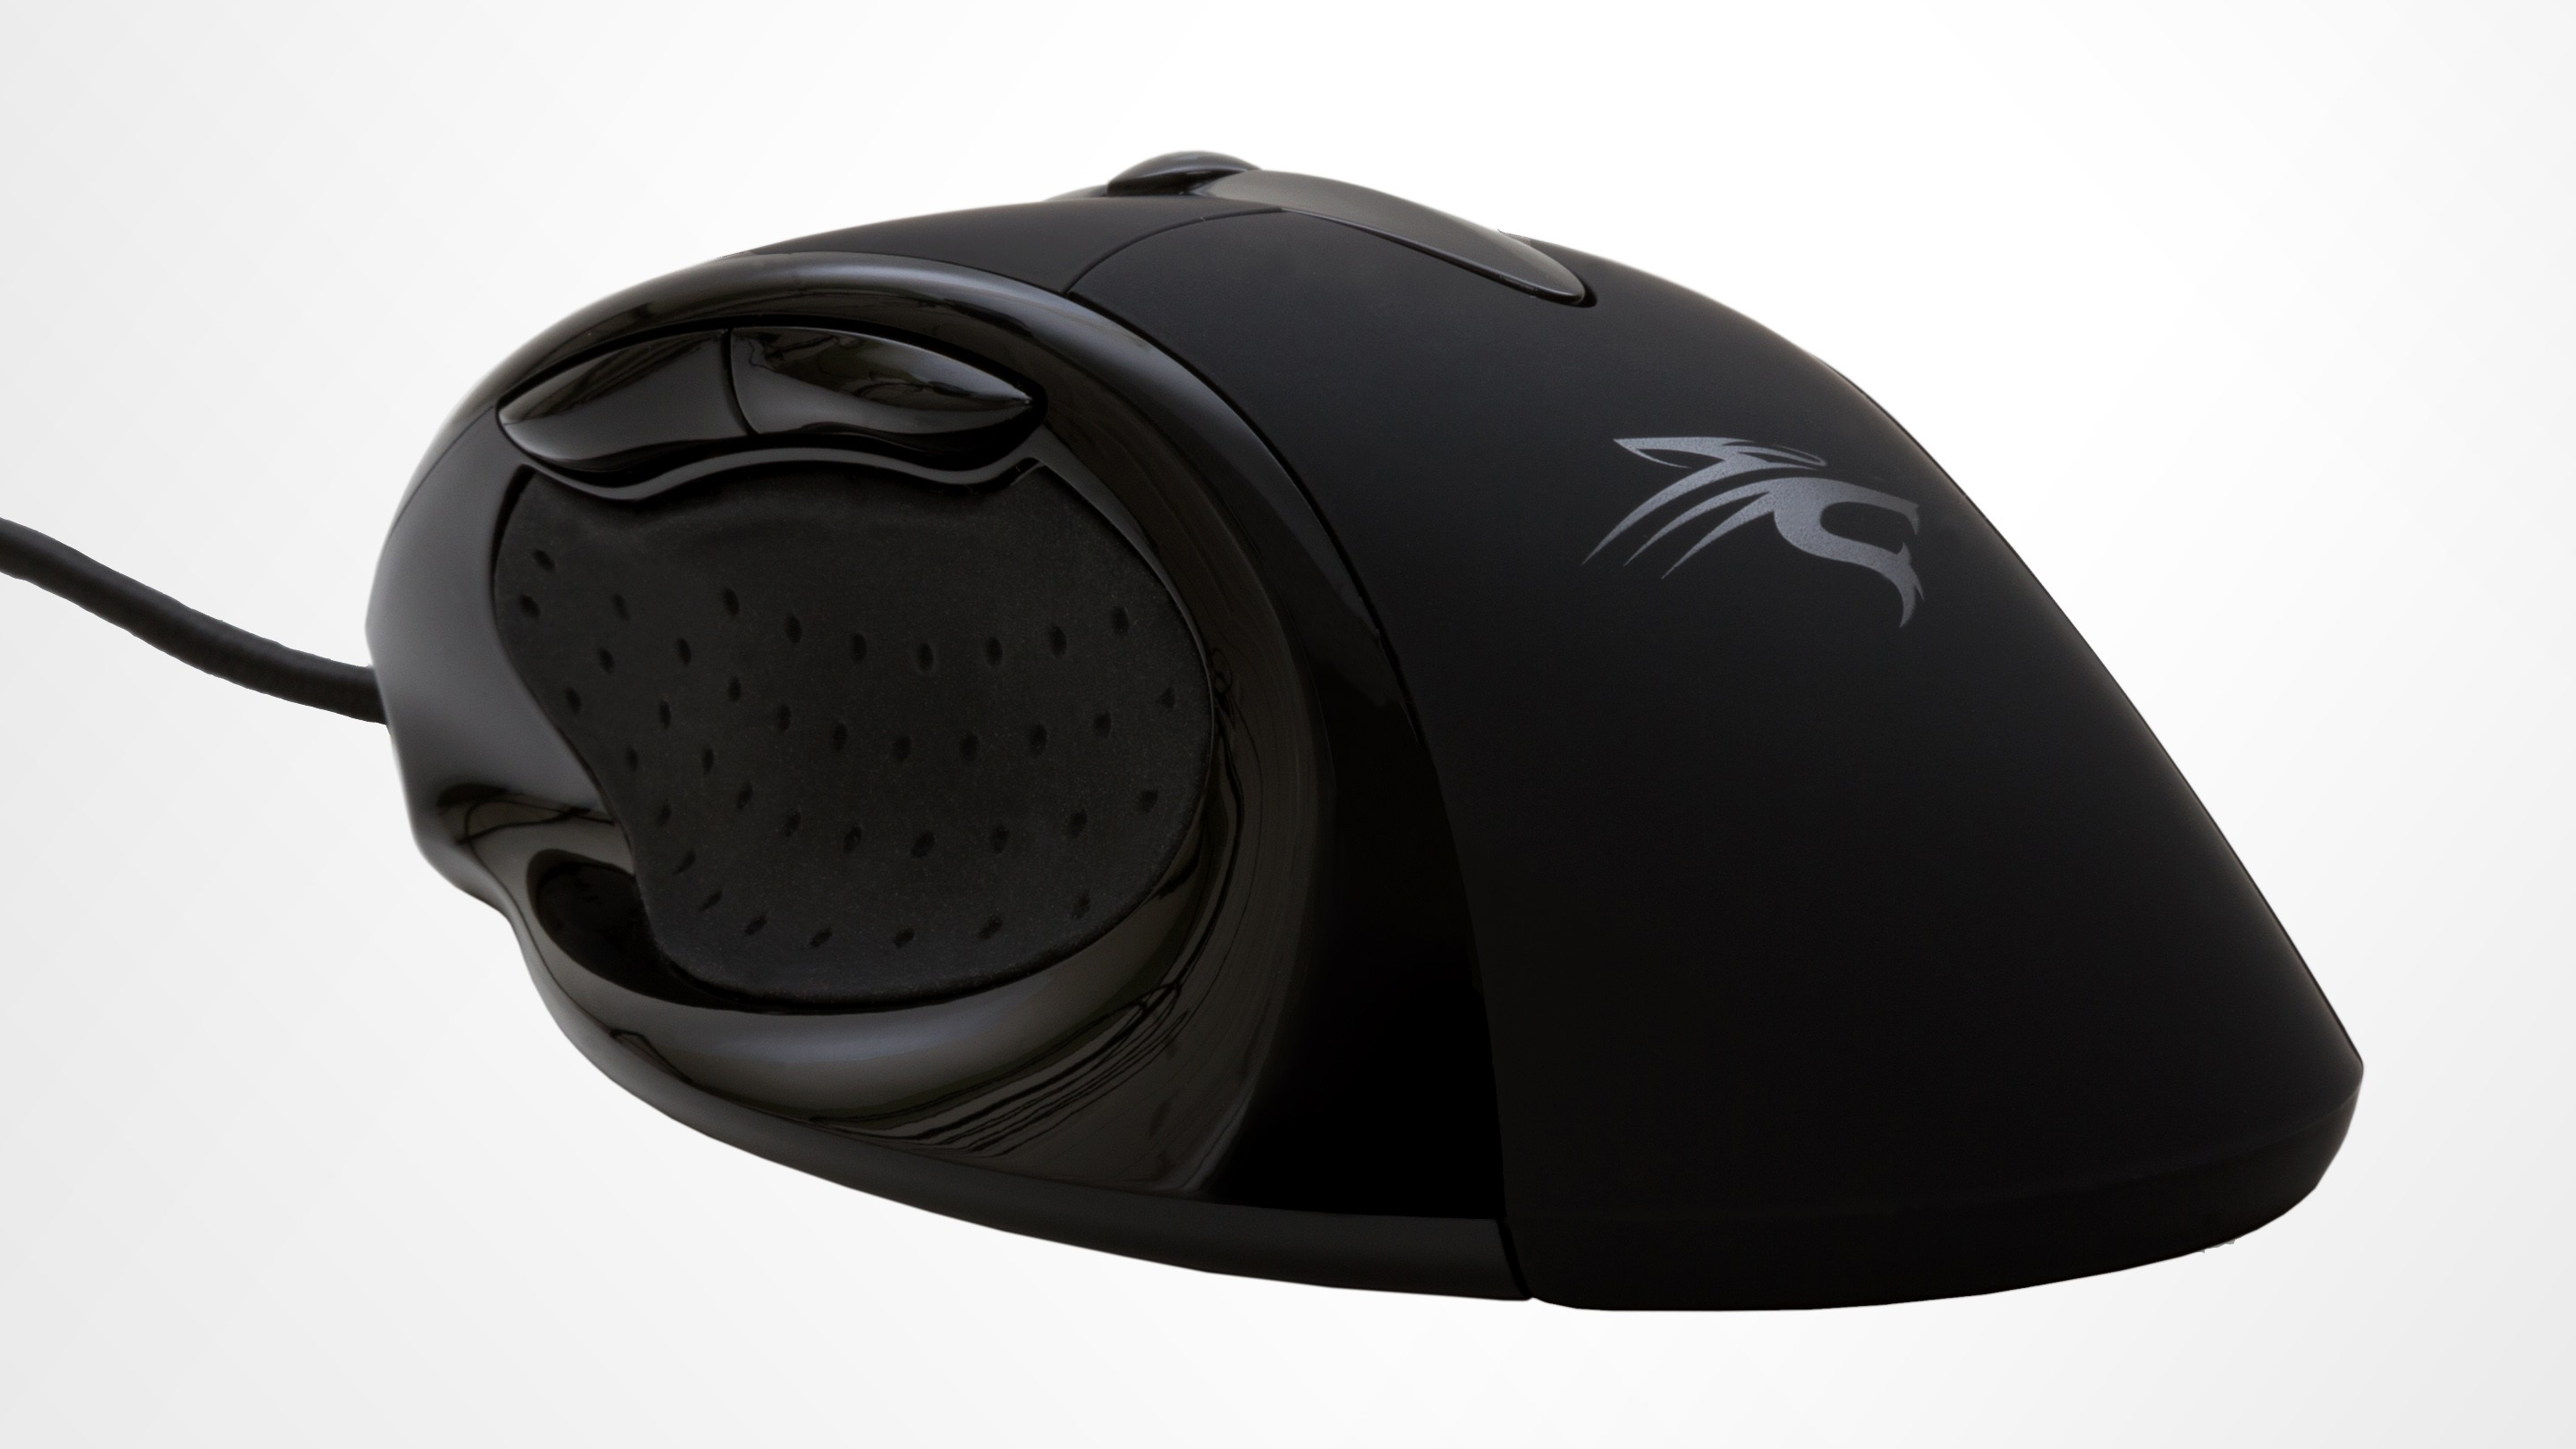 MOUSE GAMING Whirlwind X GS-3320